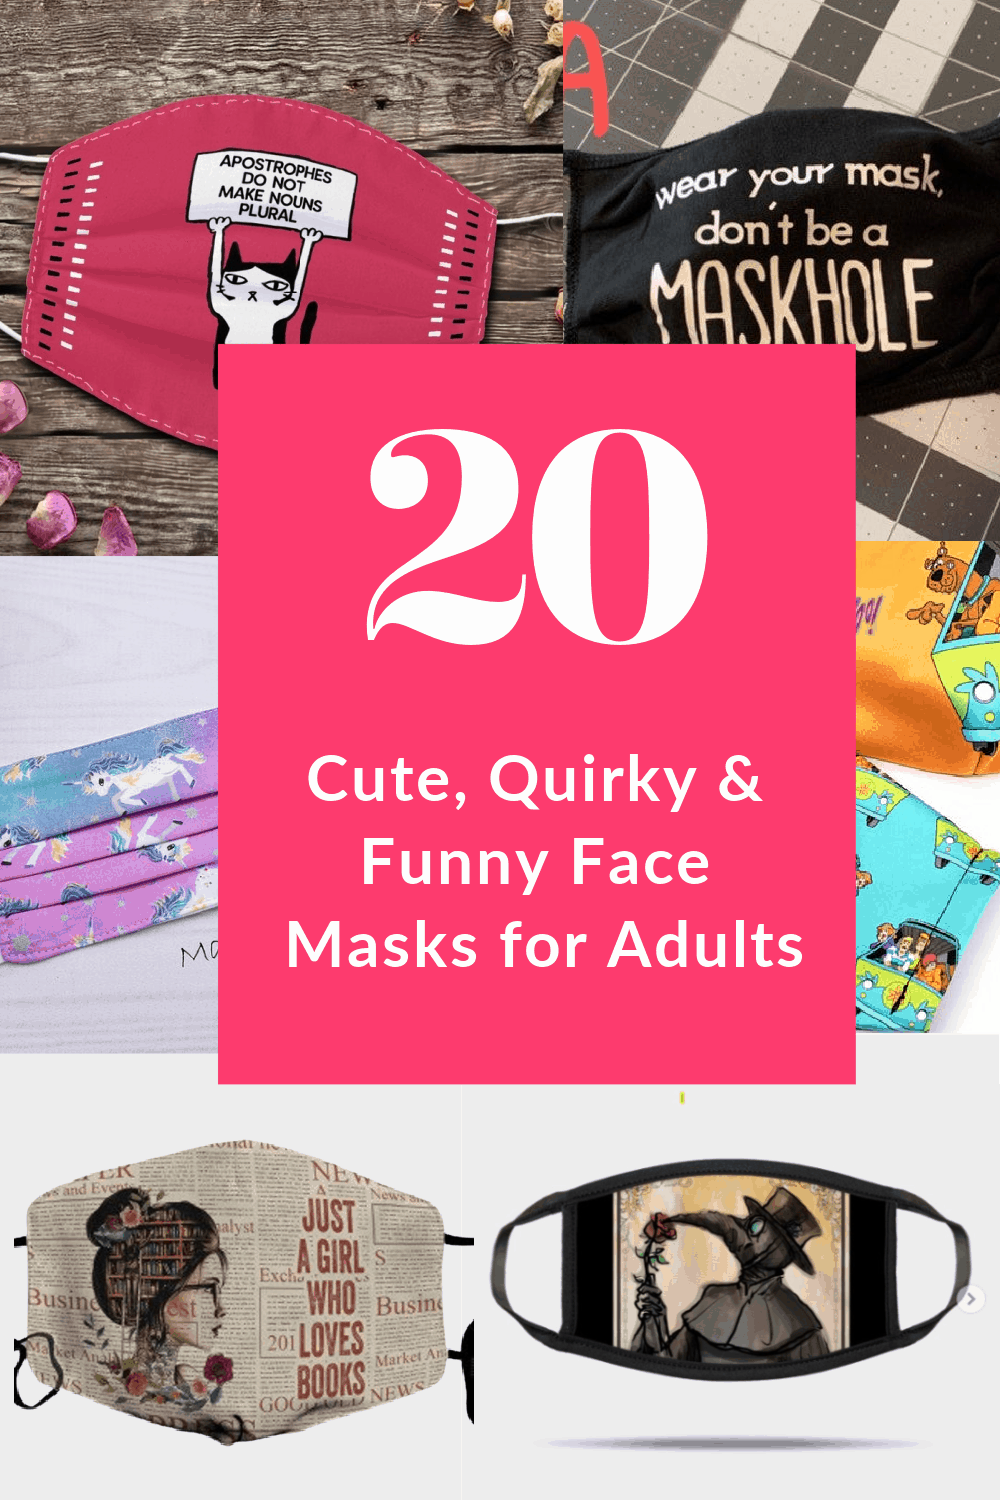 Since we have to wear face masks for the foreseeable future, might as well make them fun! In that spirit, below are some of my favorite cute, quirky, and funny face masks that are almost fun to wear. Almost...